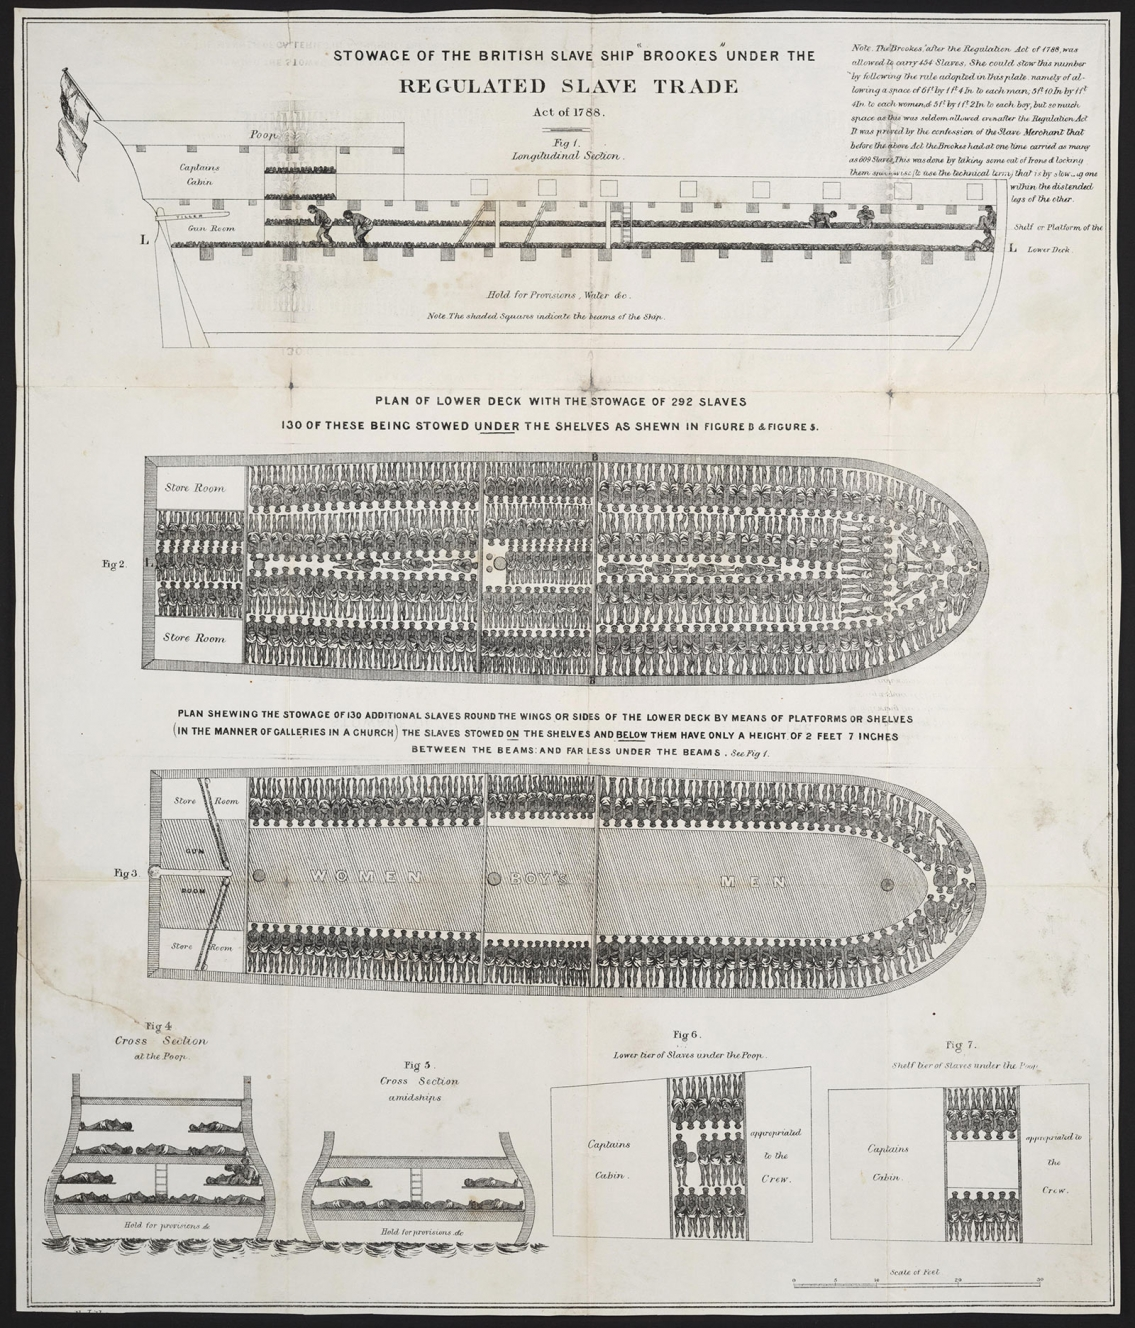 Regulated Slave Trade - Stowage of the British Slave Ship, 1788